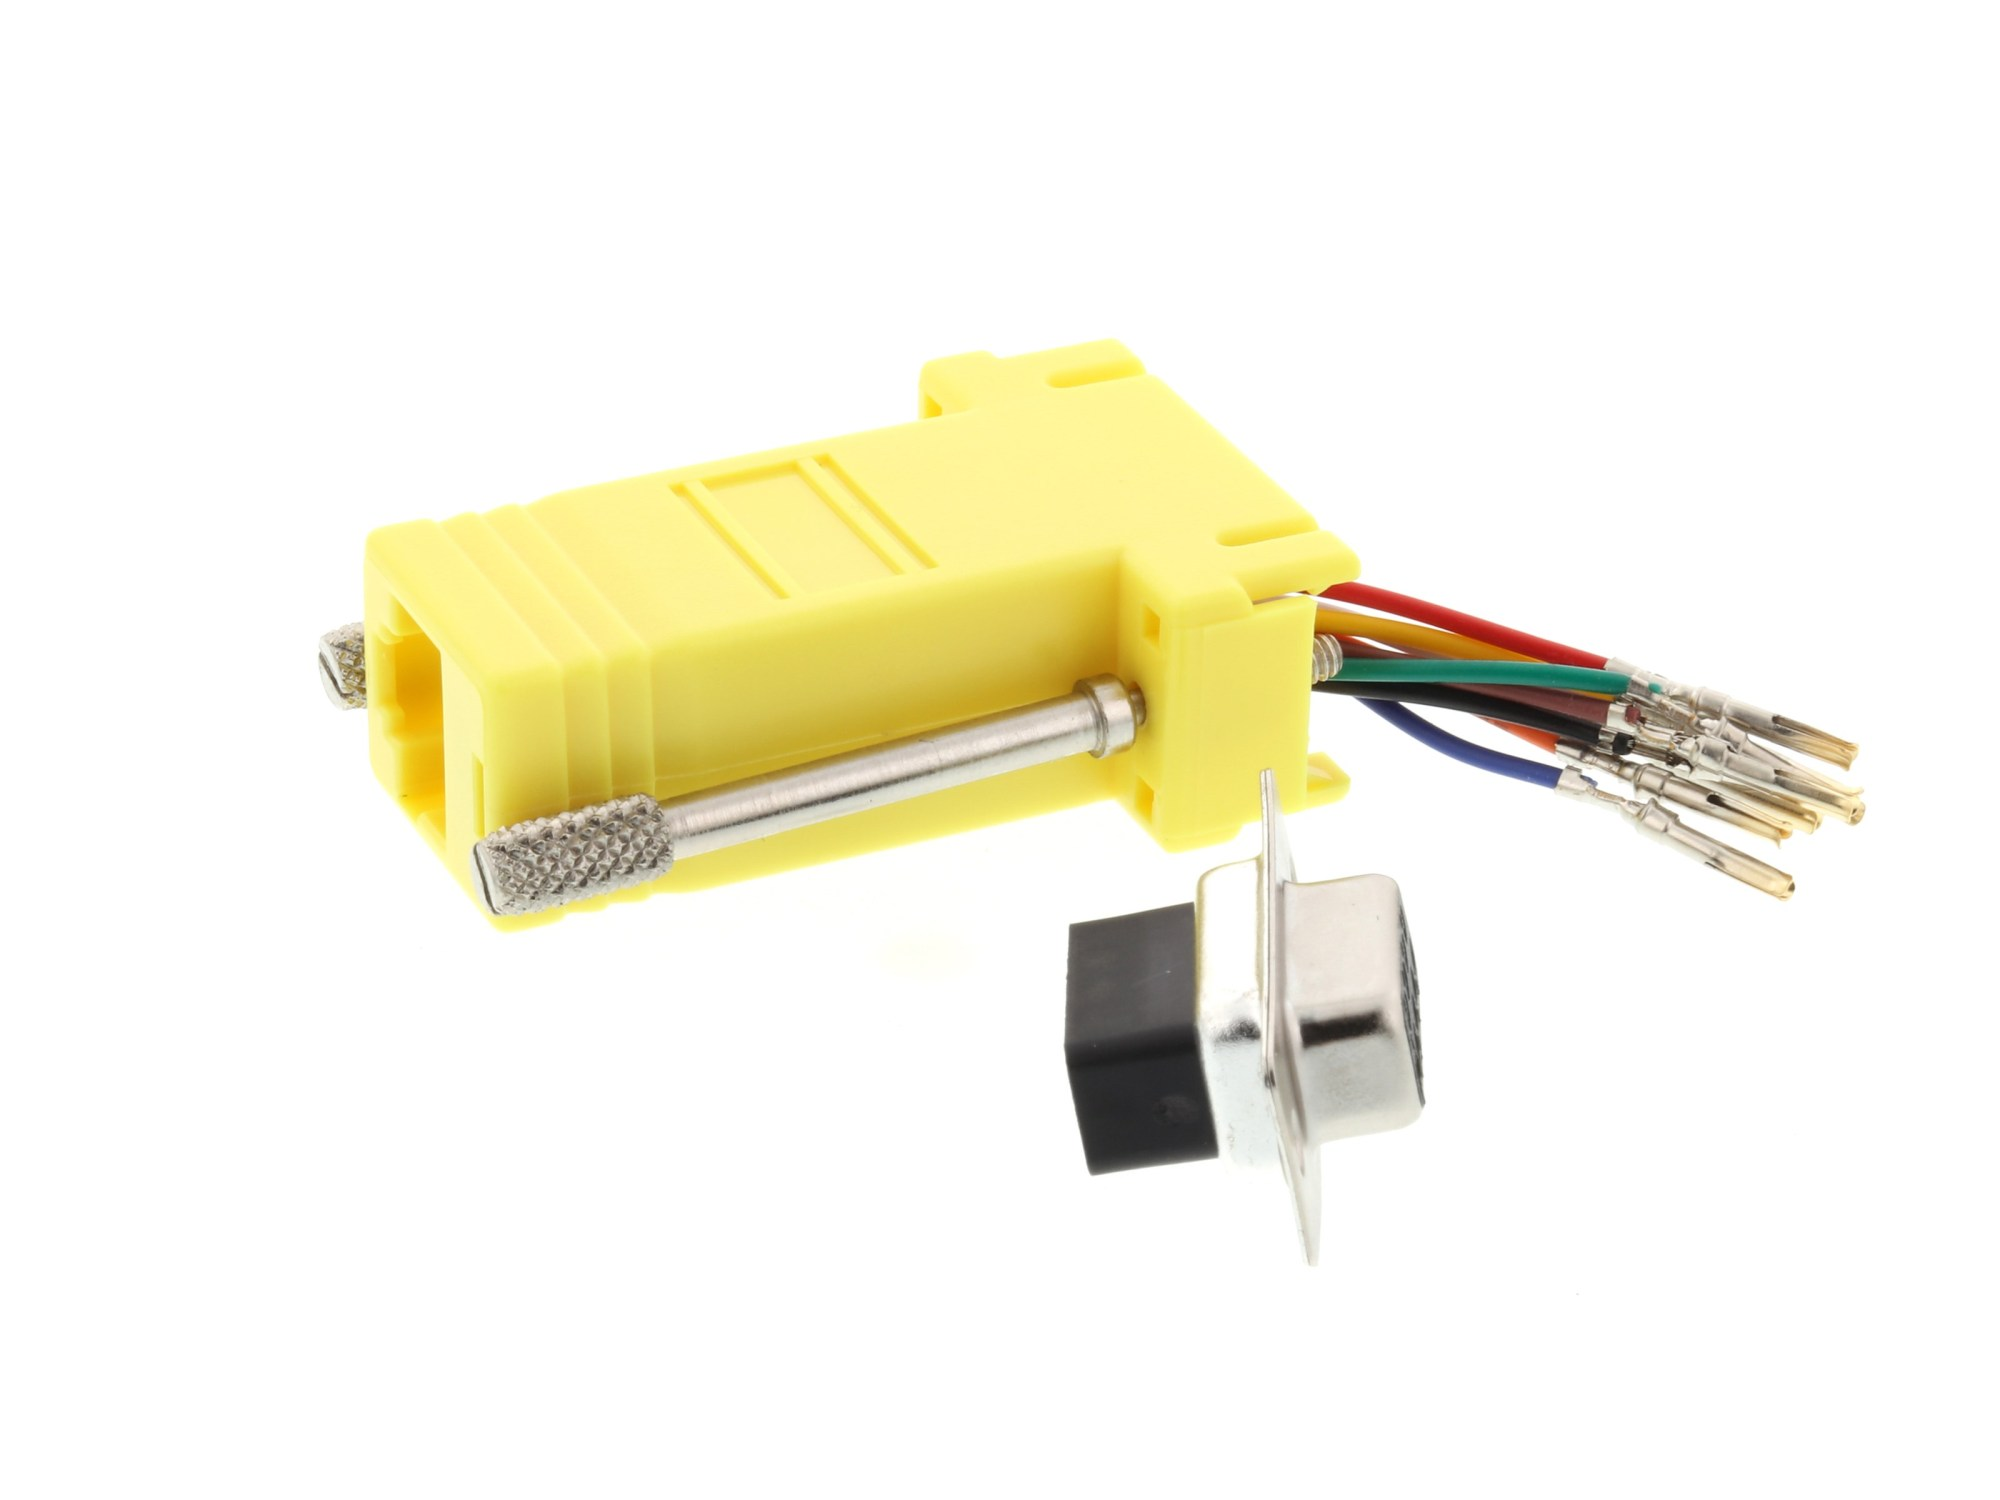 hight resolution of  picture of modular adapter kit db9 female to rj45 yellow